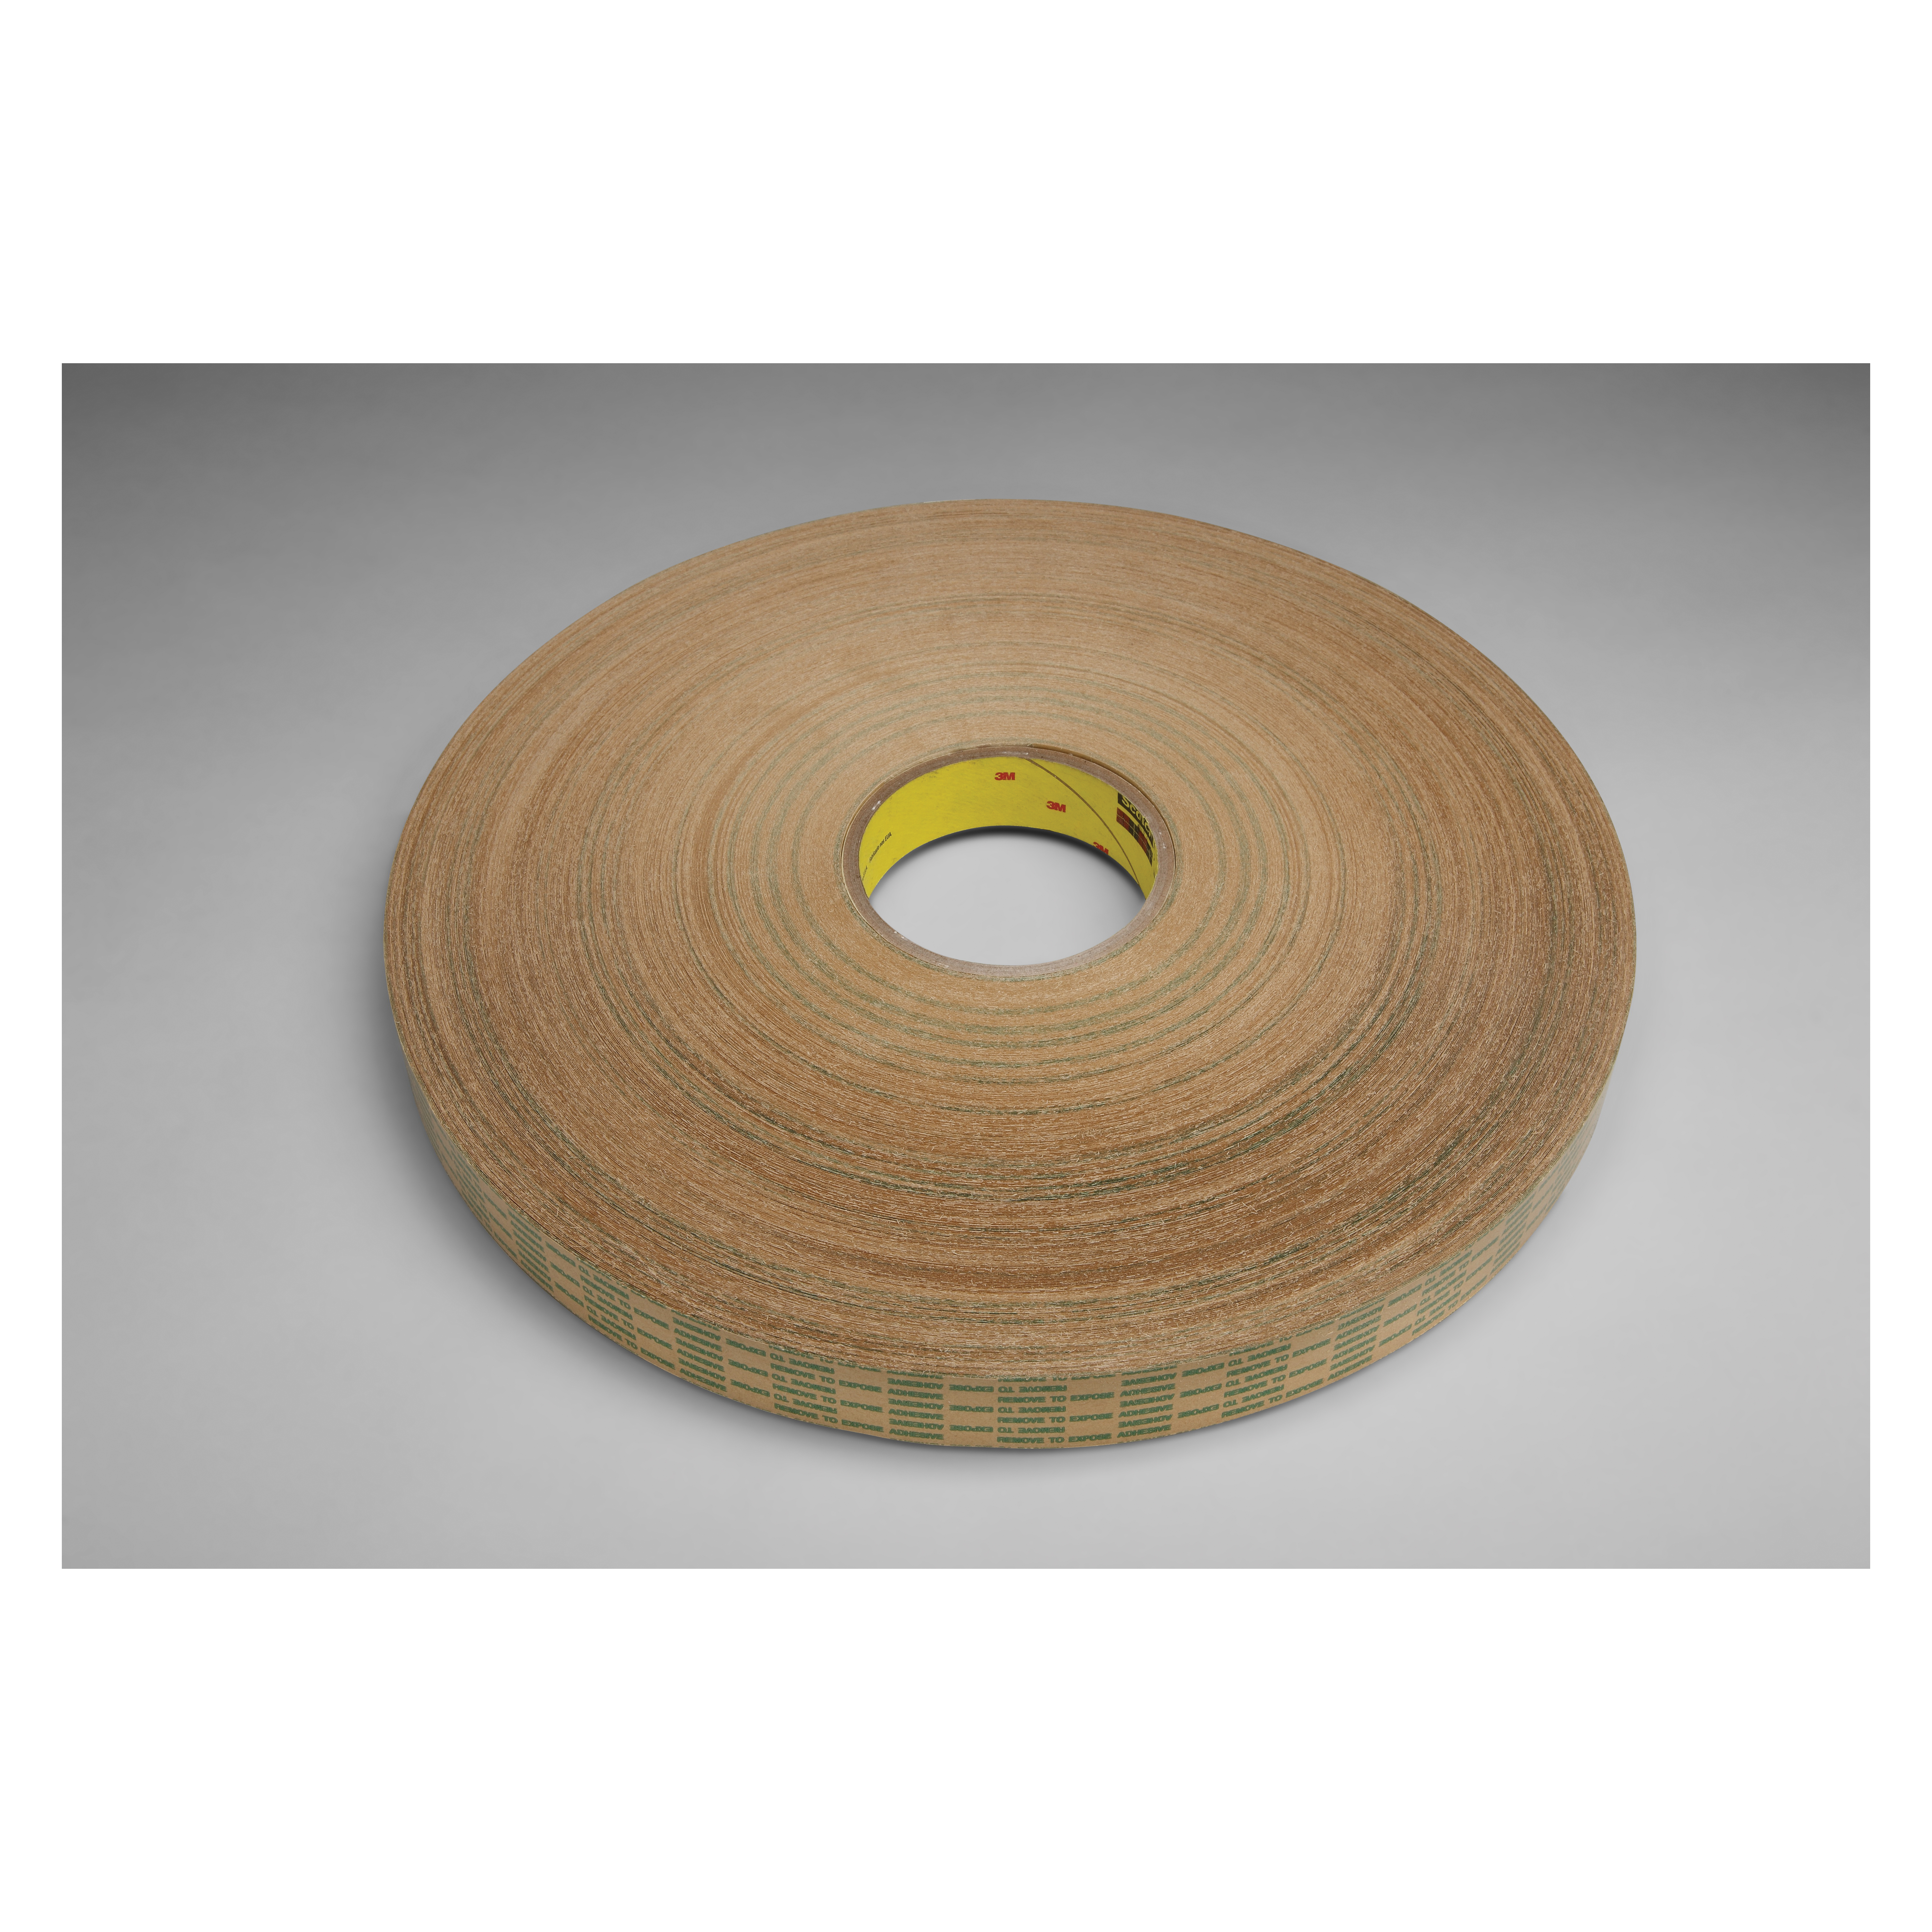 3M™ 021200-26534 Extended Liner Adhesive Transfer Tape, 750 yd L x 1 in W, 1 mil THK, 1 mil 400 Acrylic Adhesive, Foam Backing, Translucent